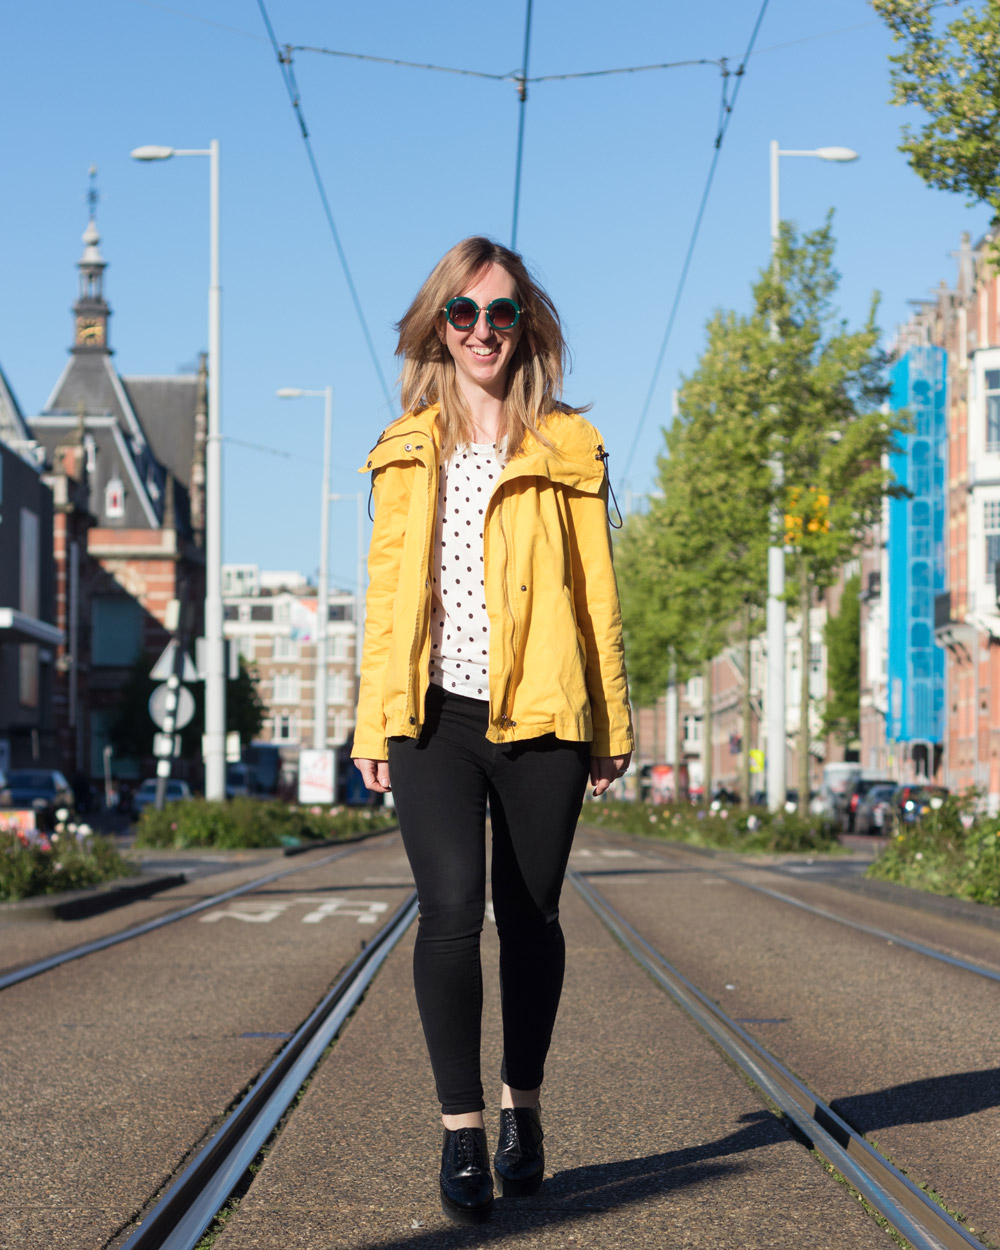 Lifestyle photo from a photo session in Amsterdam, registering your moment, creating memories forever.